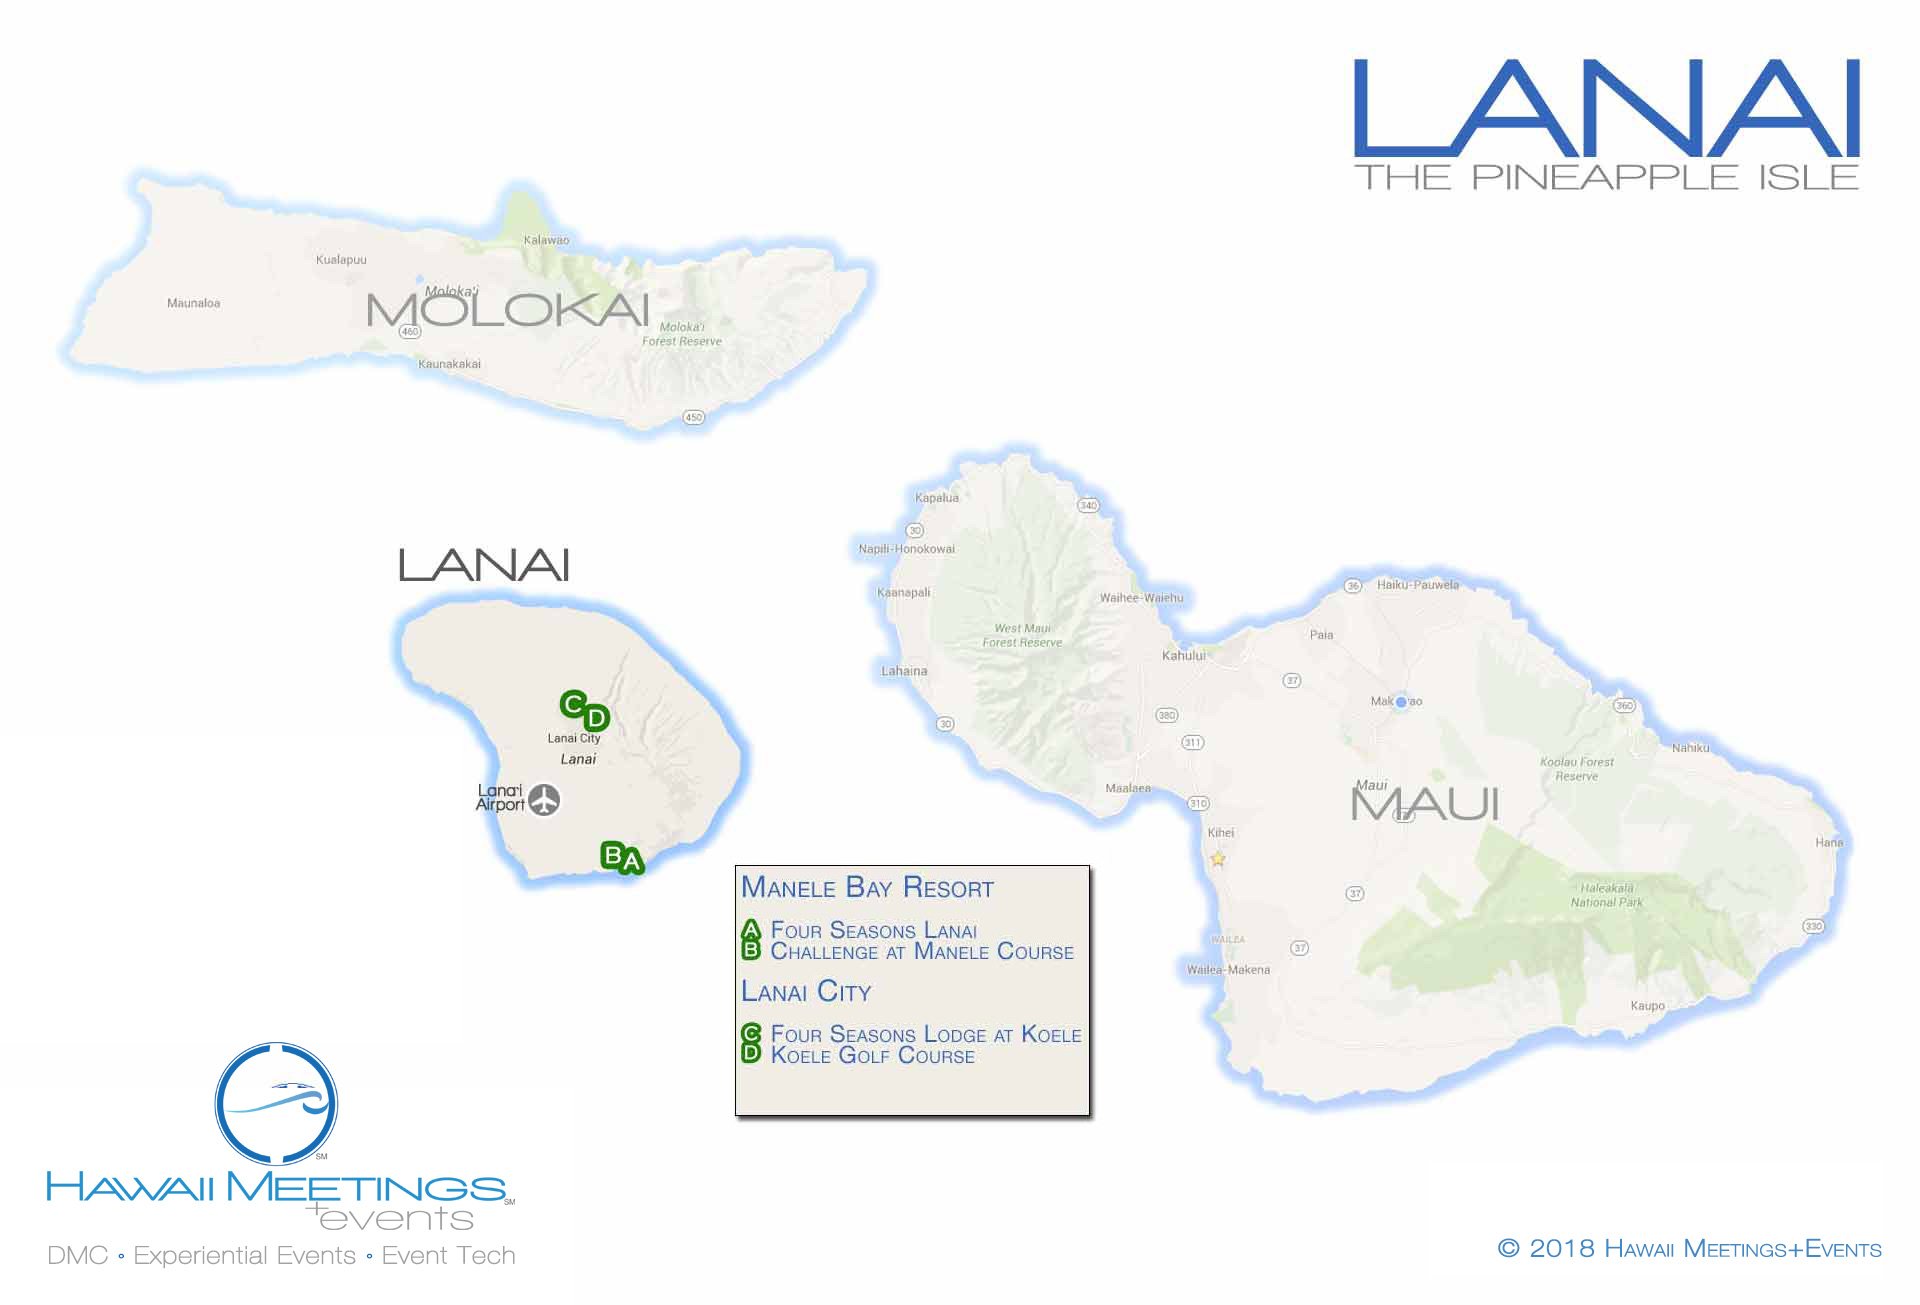 The luxurious meeting and incentive island of Lanai.